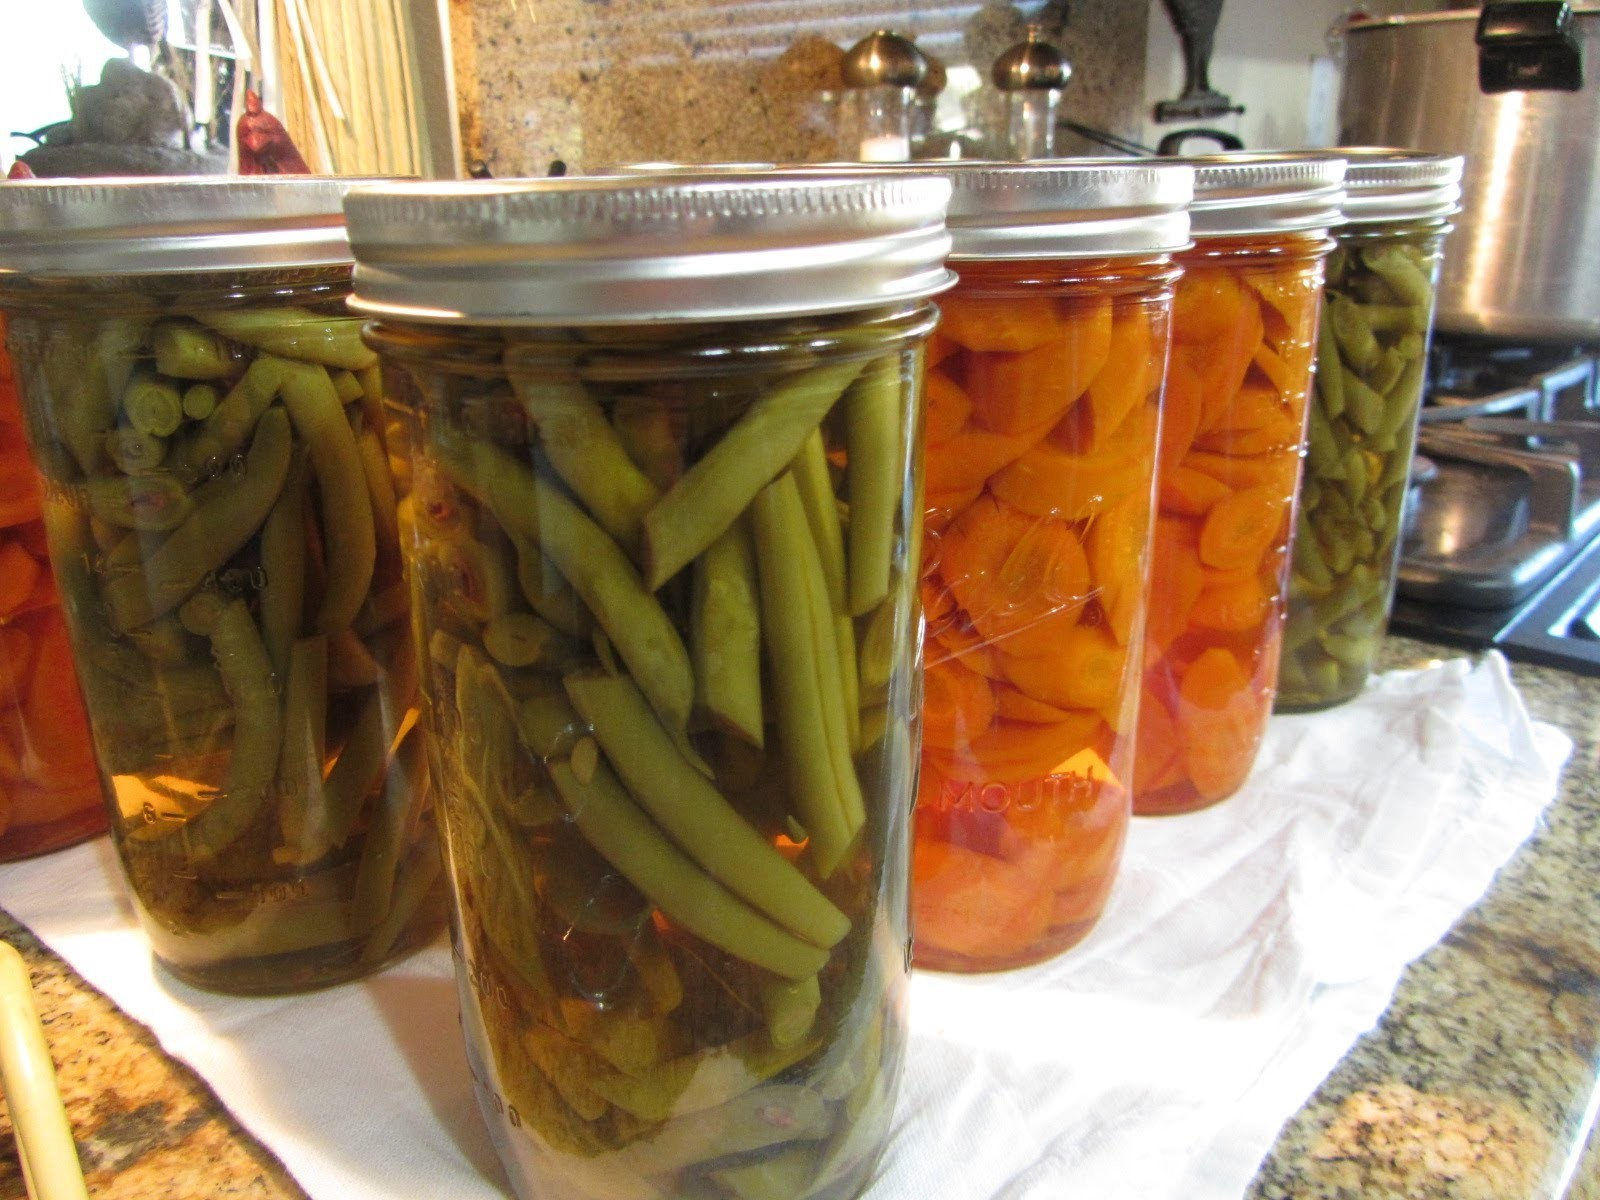 Home Canned Green Beans & Carrots From The Garden